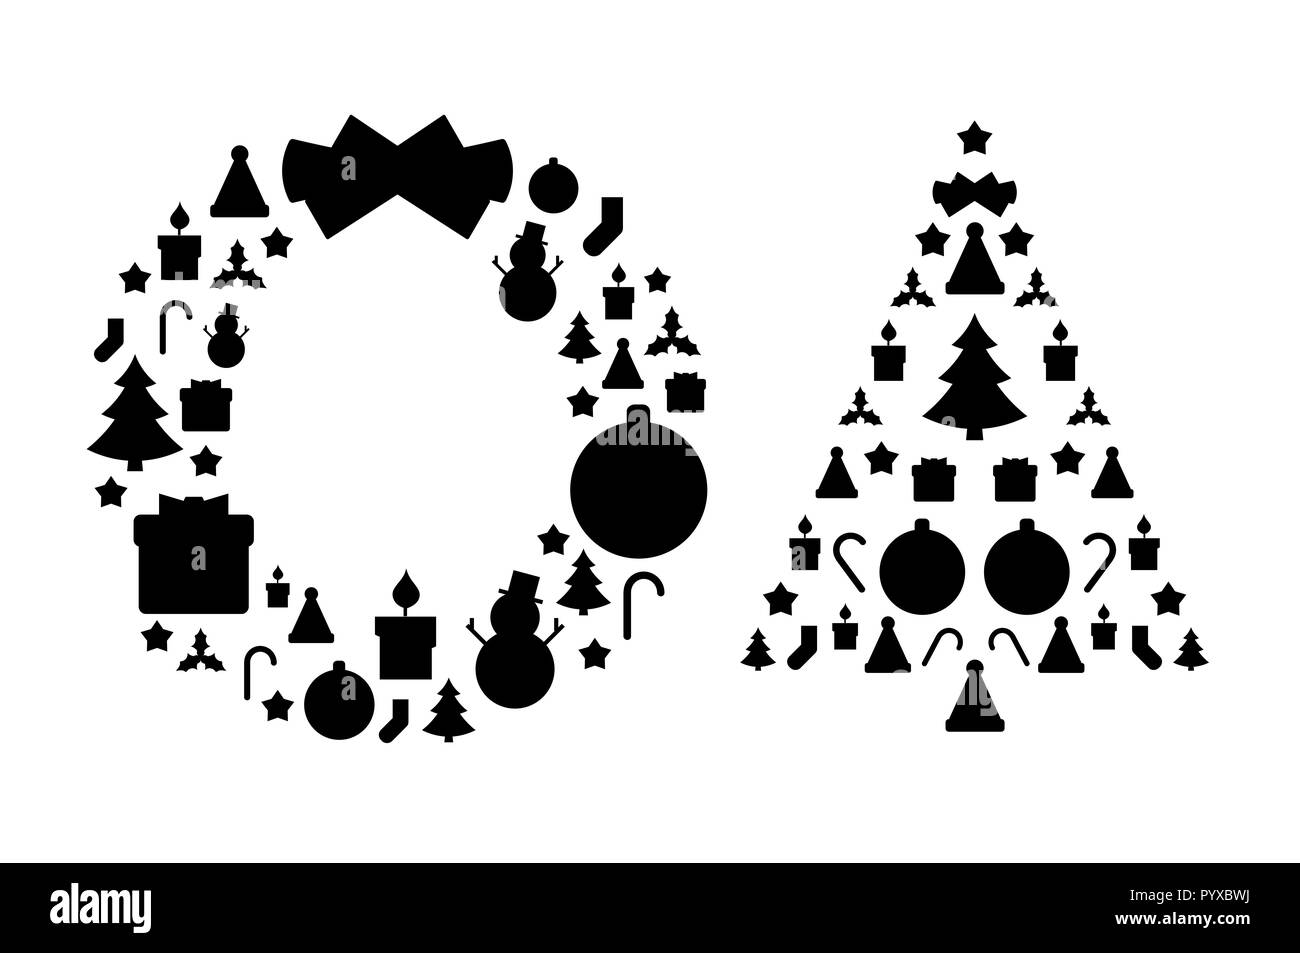 Christmas Wreath Silhouette.Christmas Wreath And Christmas Tree Silhouettes Made Of